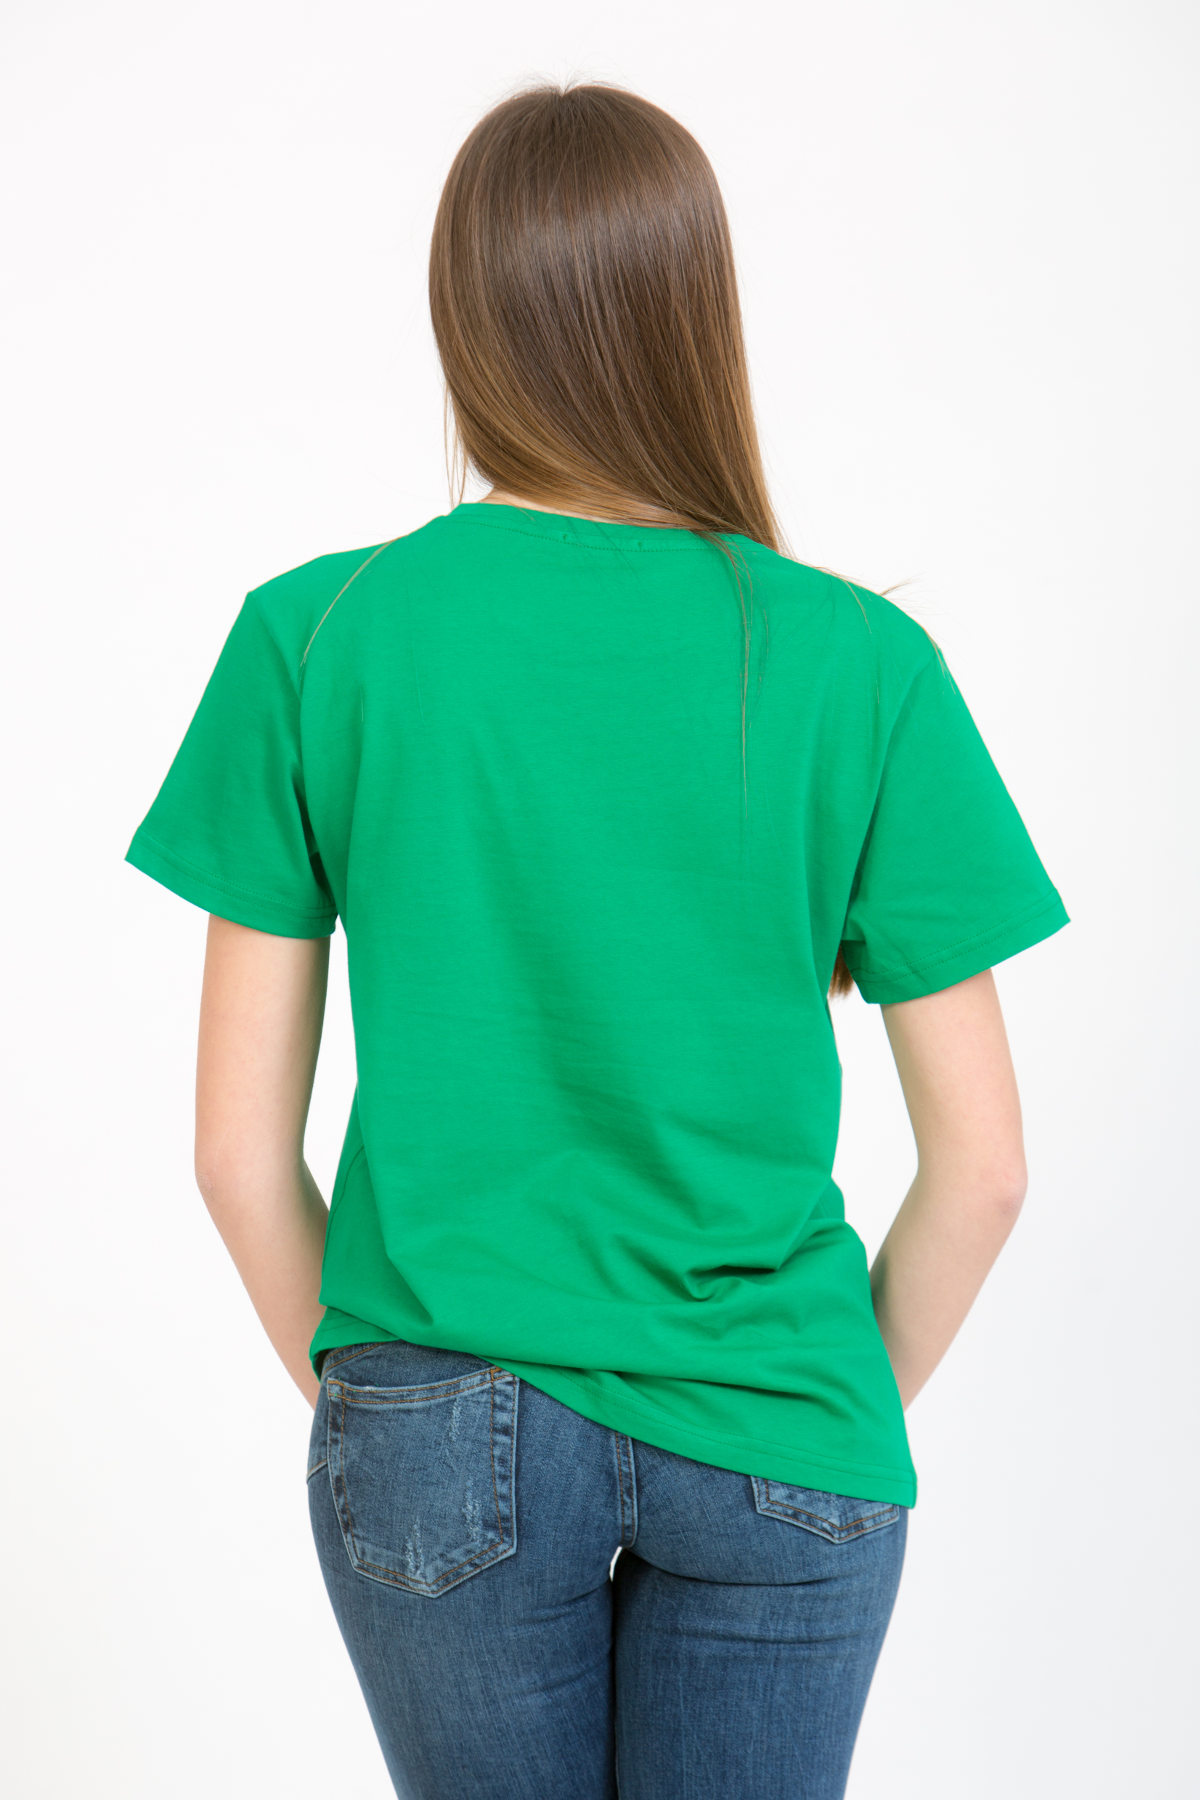 LERÊVERIES - T-shirt Donna Modern Dreamer Colore Verde - C